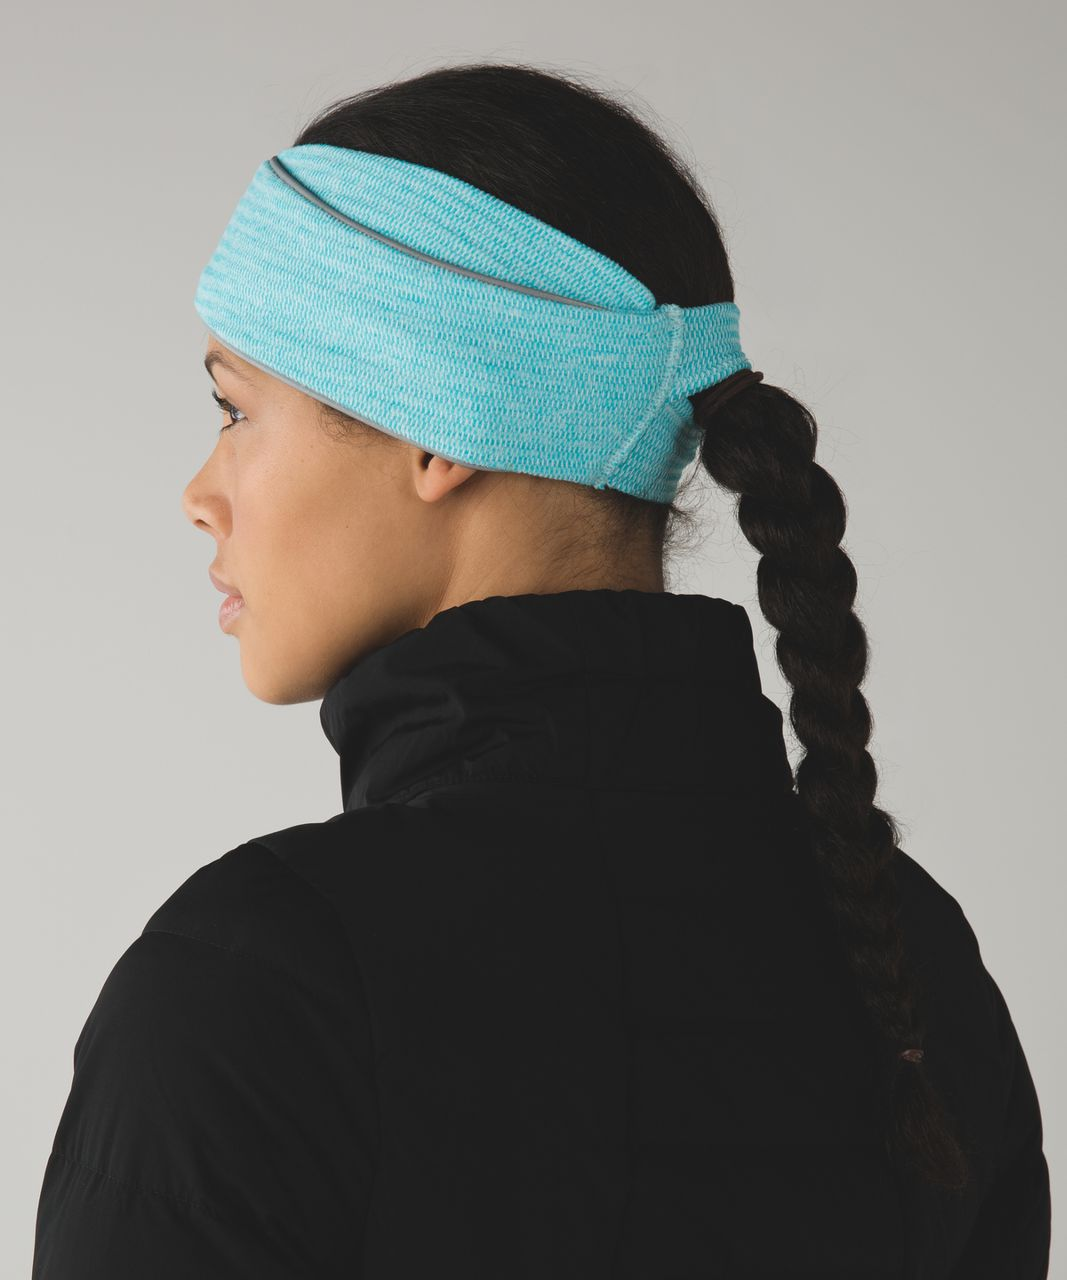 Lululemon Run And Done Ear Warmer *Ponytail - Mini Check Pique Aquamarine Heathered Peacock Blue / Mini Check Pique Aquamarine Heathered Peacock Blue